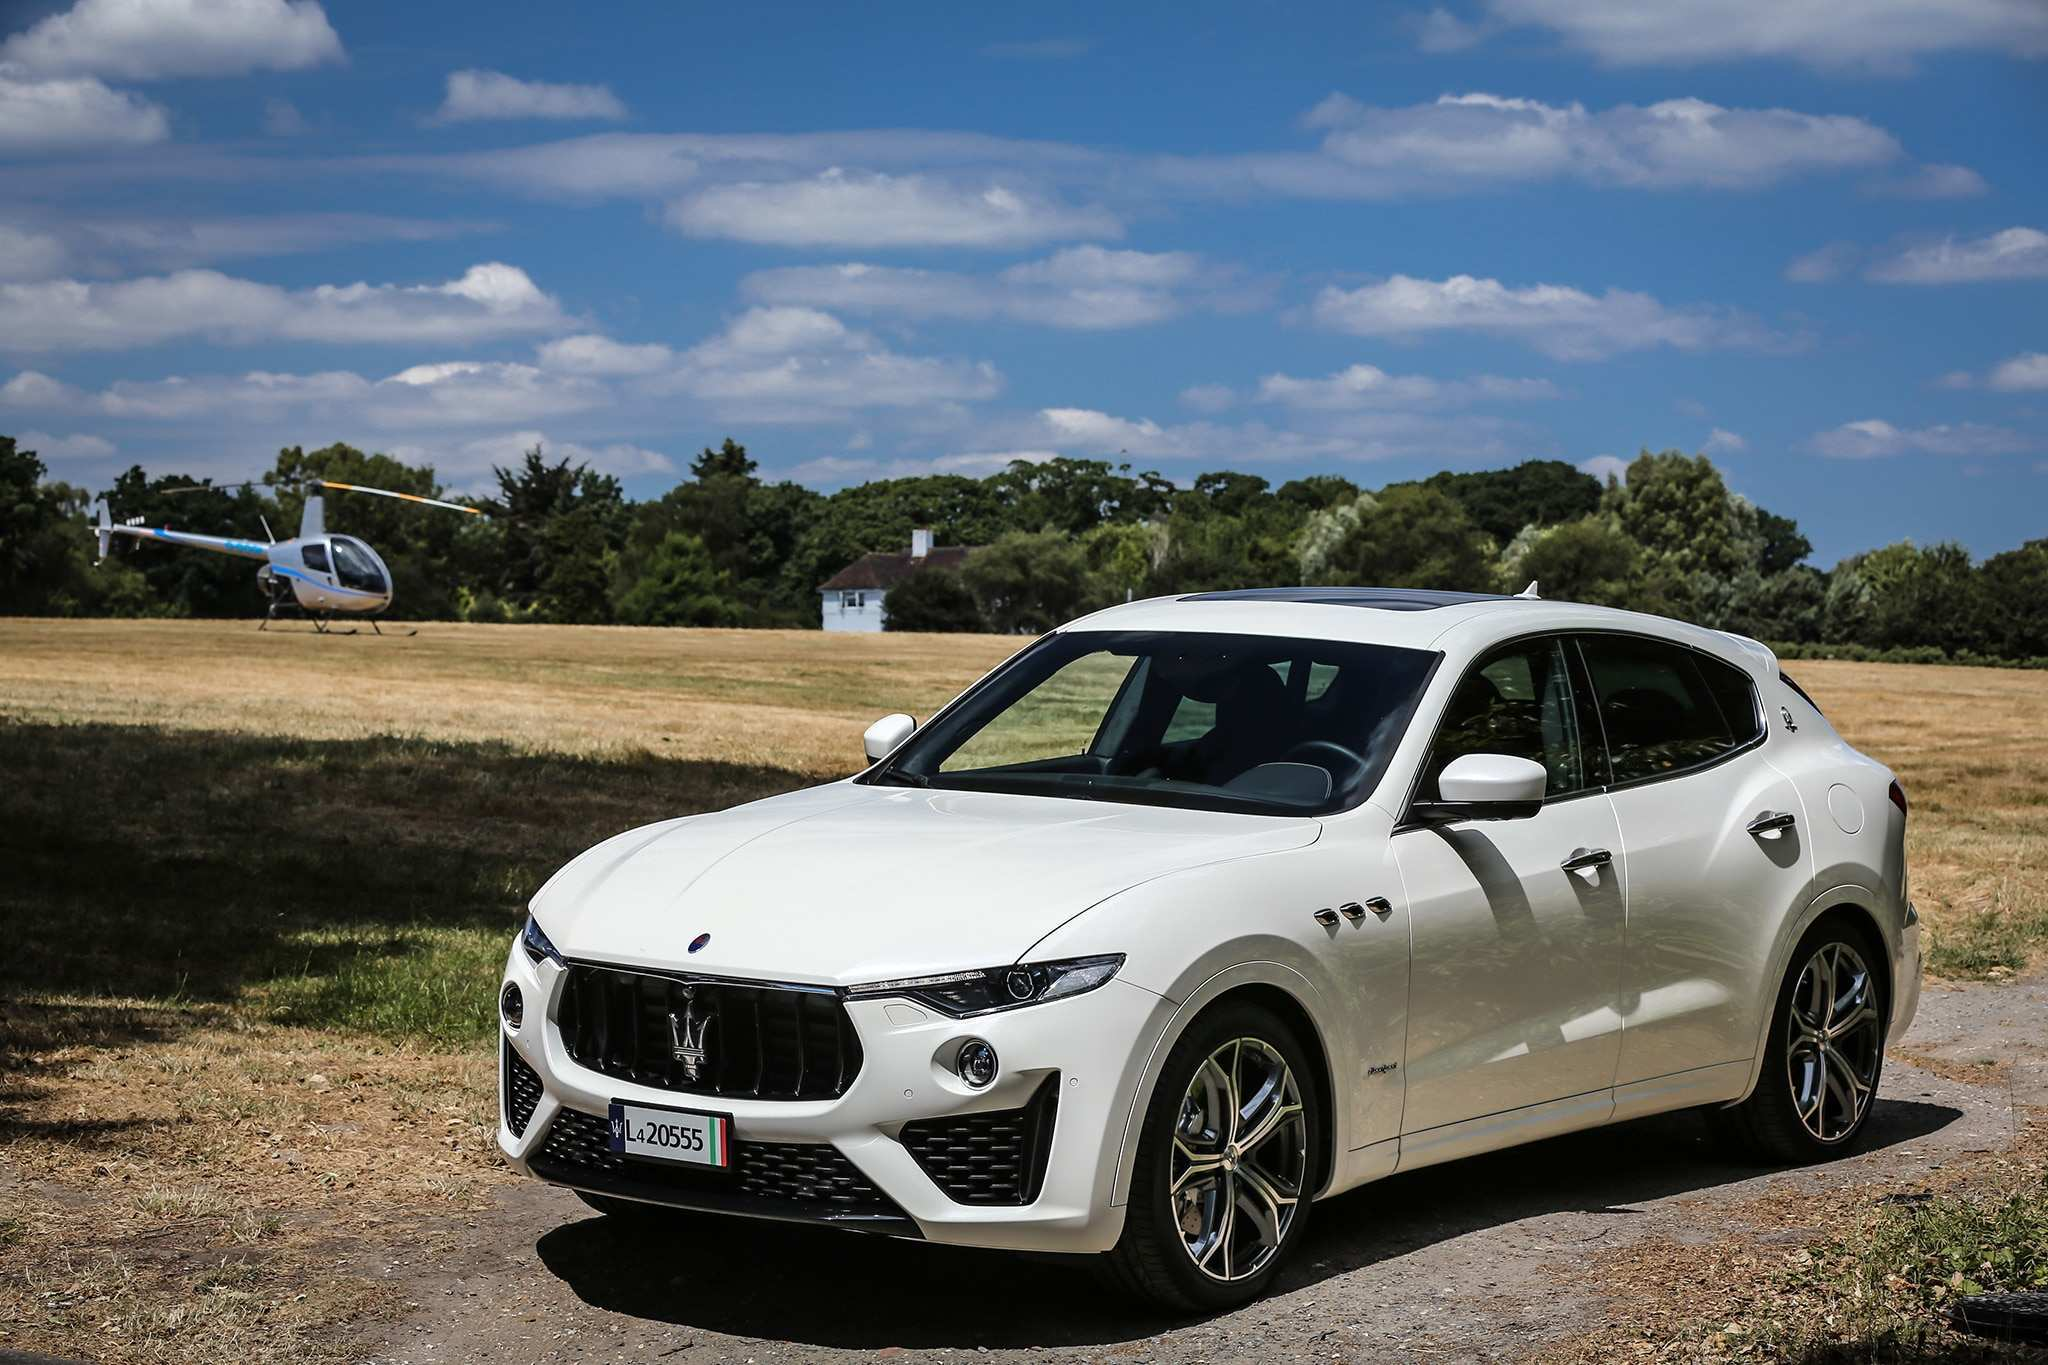 96 Best Review 2019 Maserati Suv Review with 2019 Maserati Suv